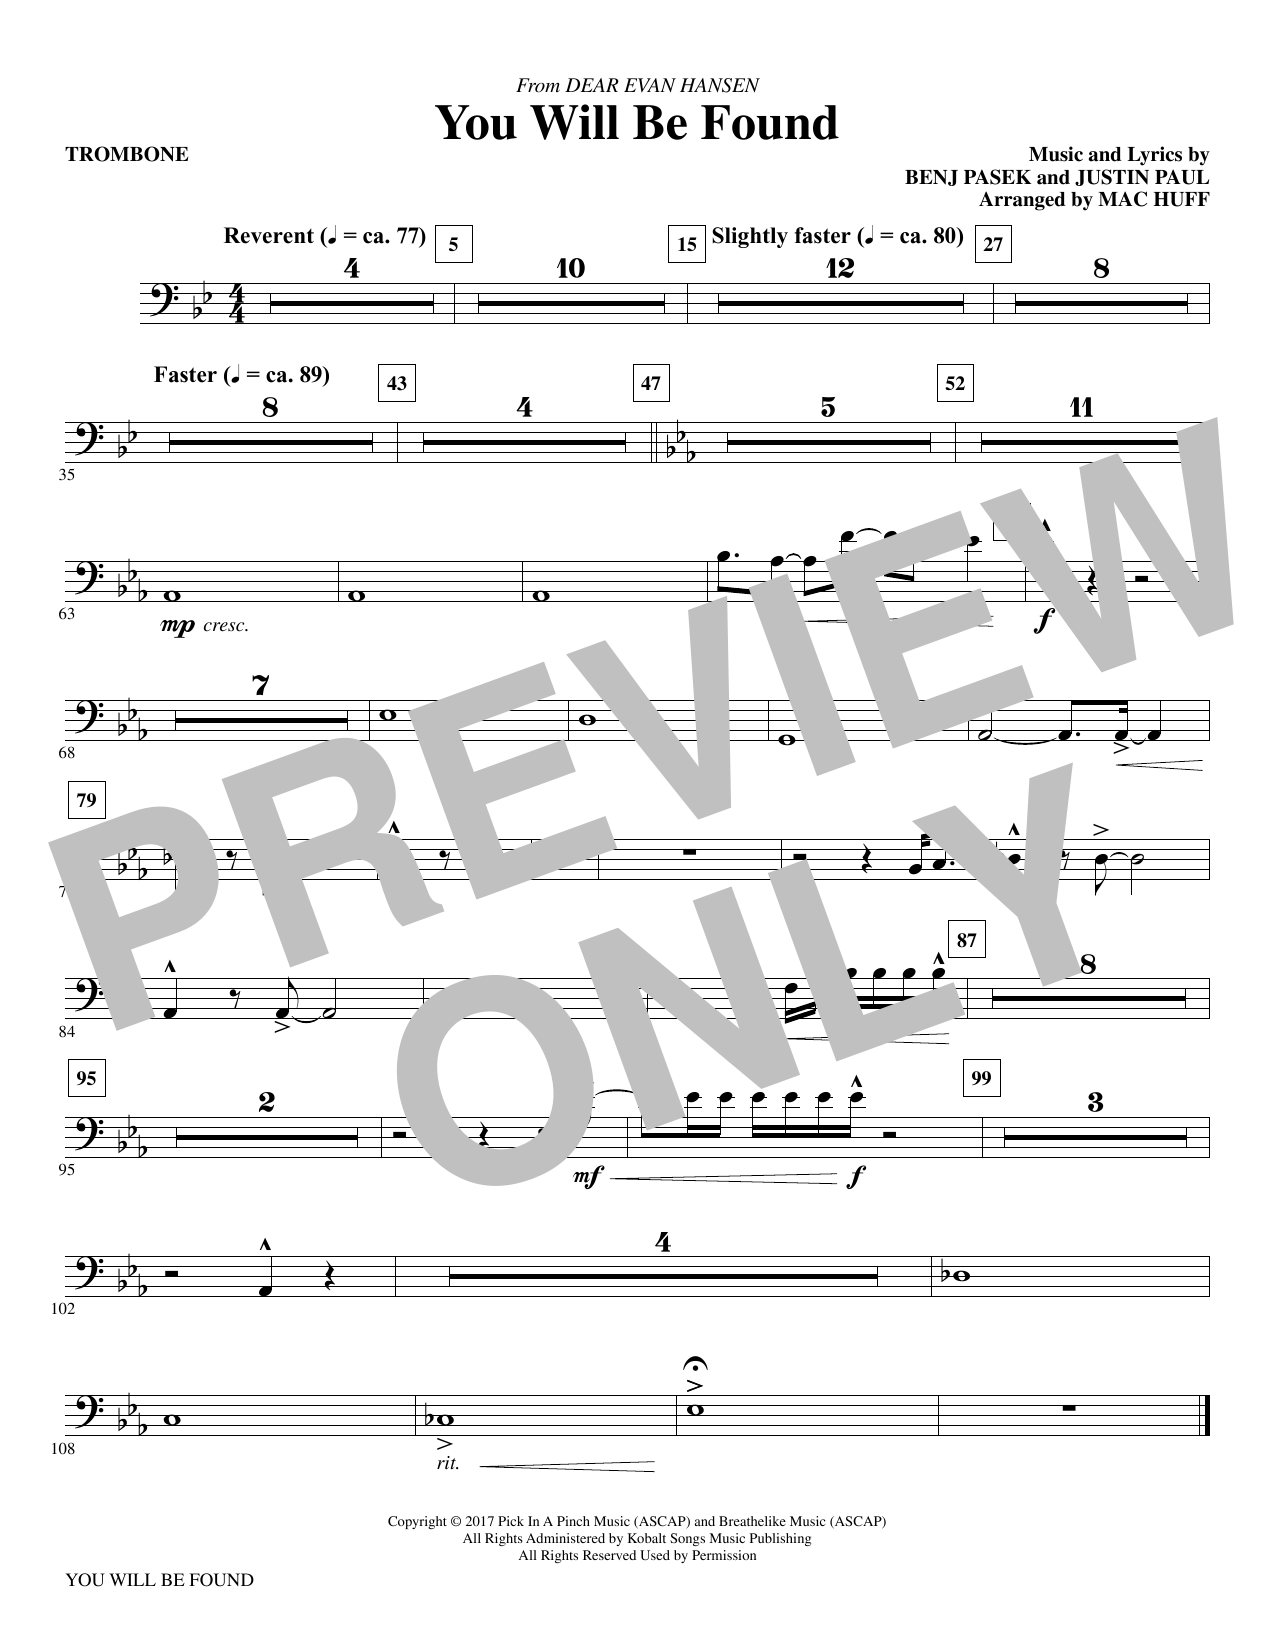 You Will Be Found (from Dear Evan Hansen) (arr. Mac Huff) - Trombone Sheet Music